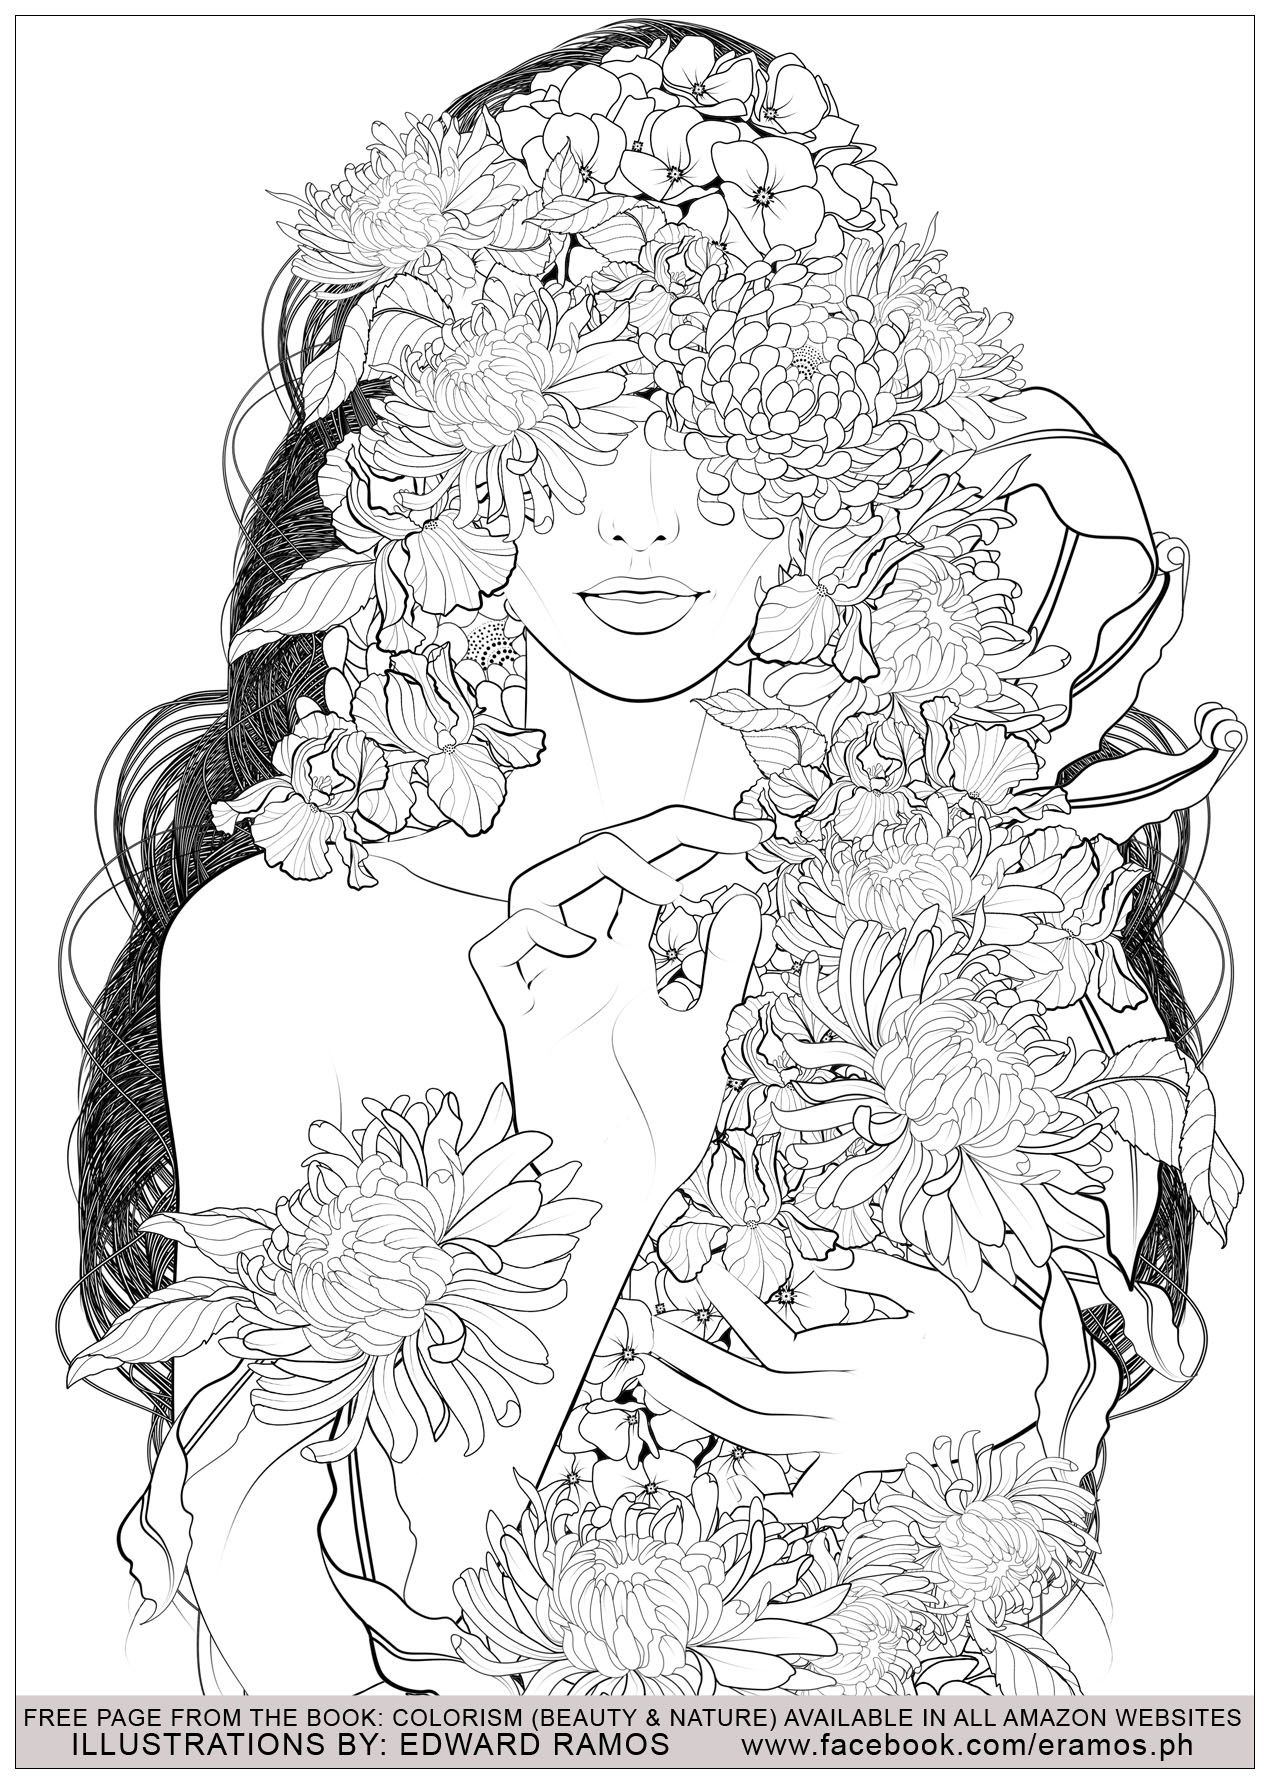 Free Edward Scissorhands Coloring Pages | Coloring pages, Coloring ... | 1784x1270